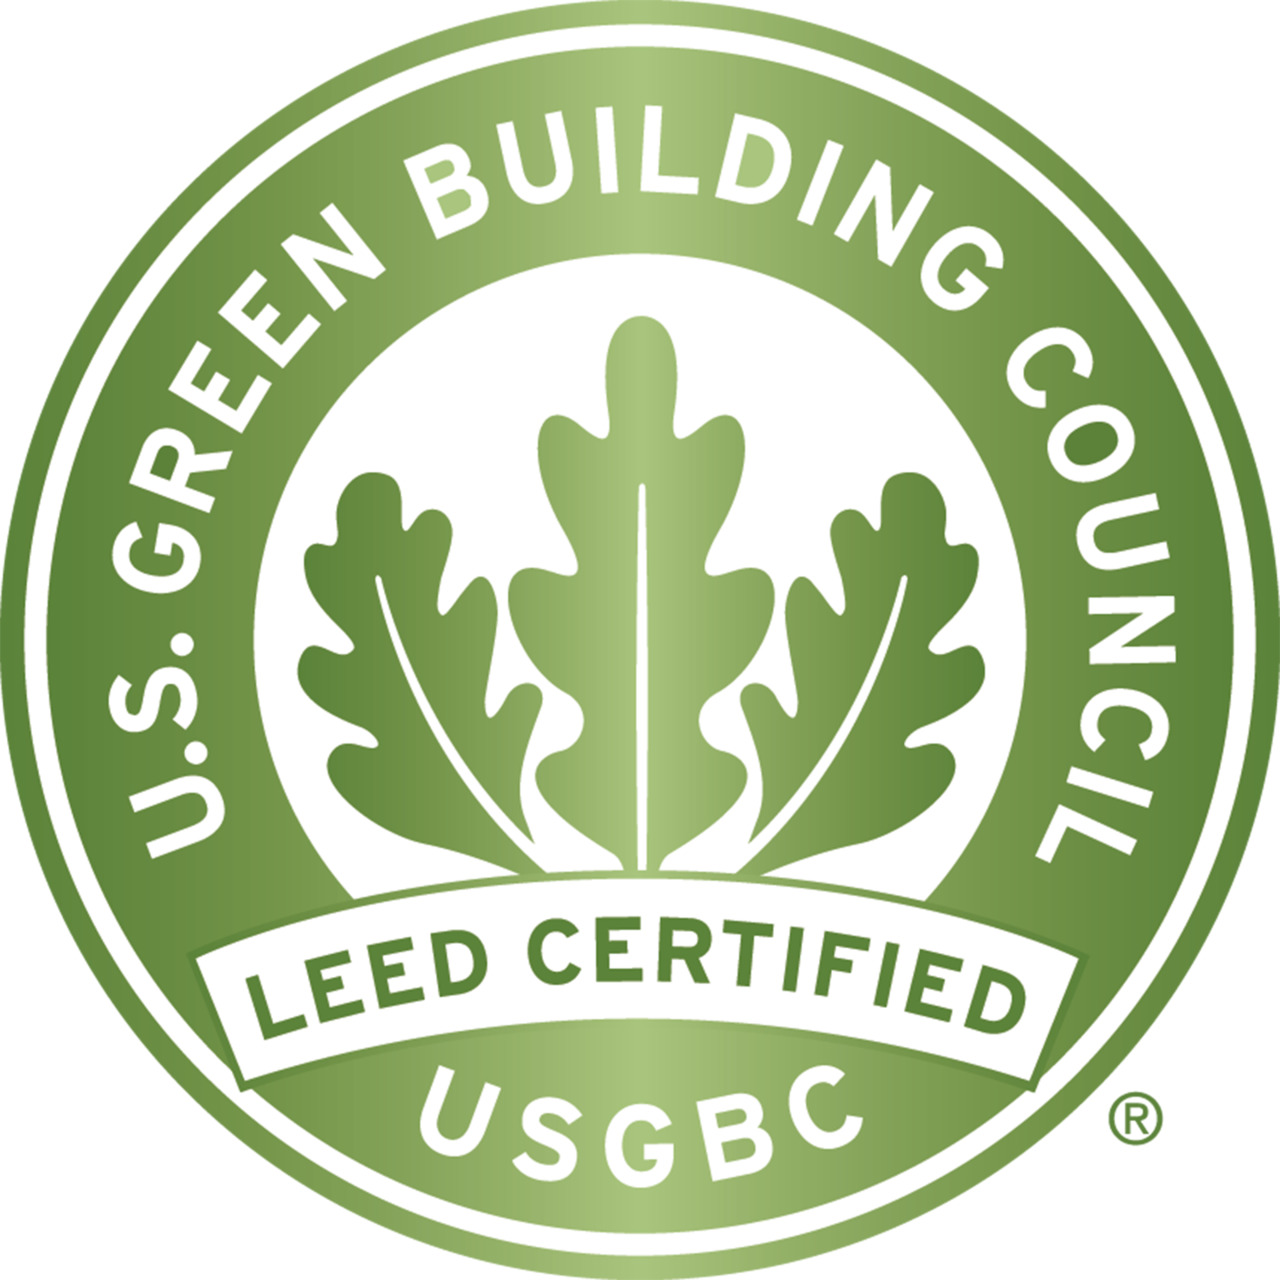 LEED certified seal